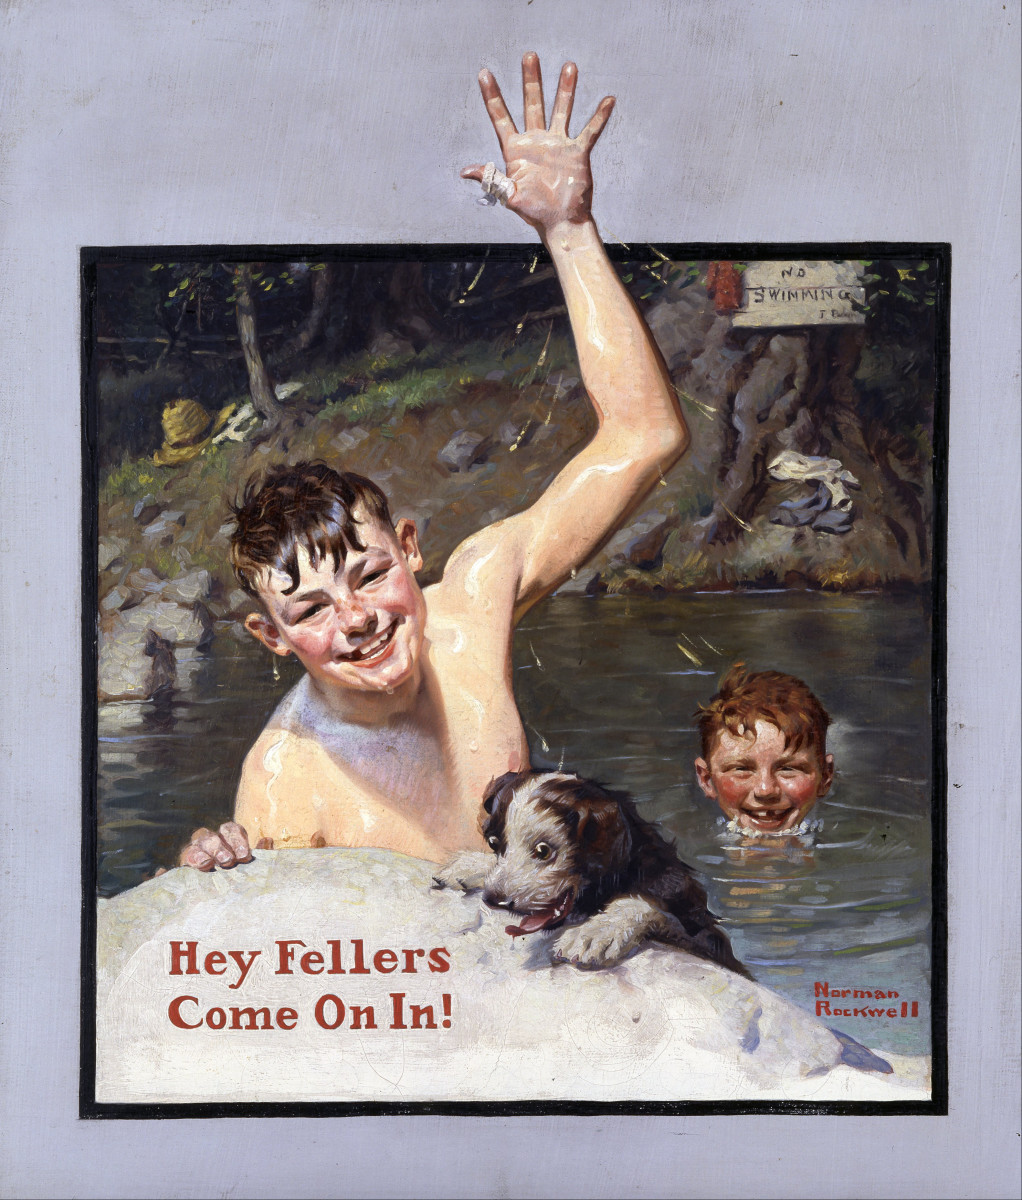 'Hey Fellers, Come On In!' by Norman Rockwell (circa 1920)